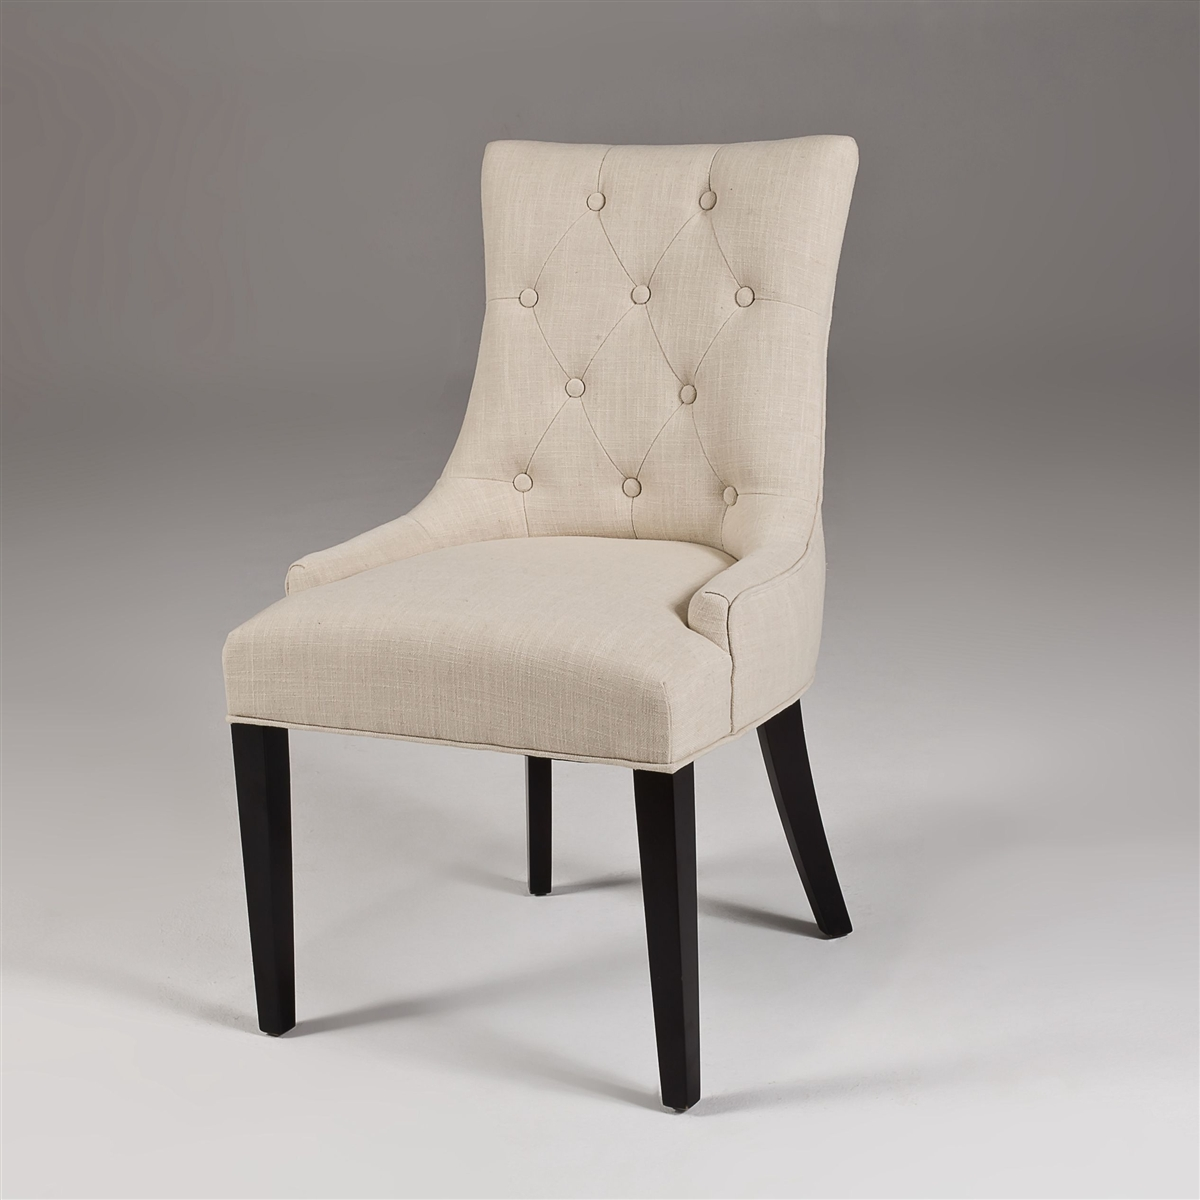 Wooden Dining Chairs   Navy Parsons Chair   Tufted Dining Chair